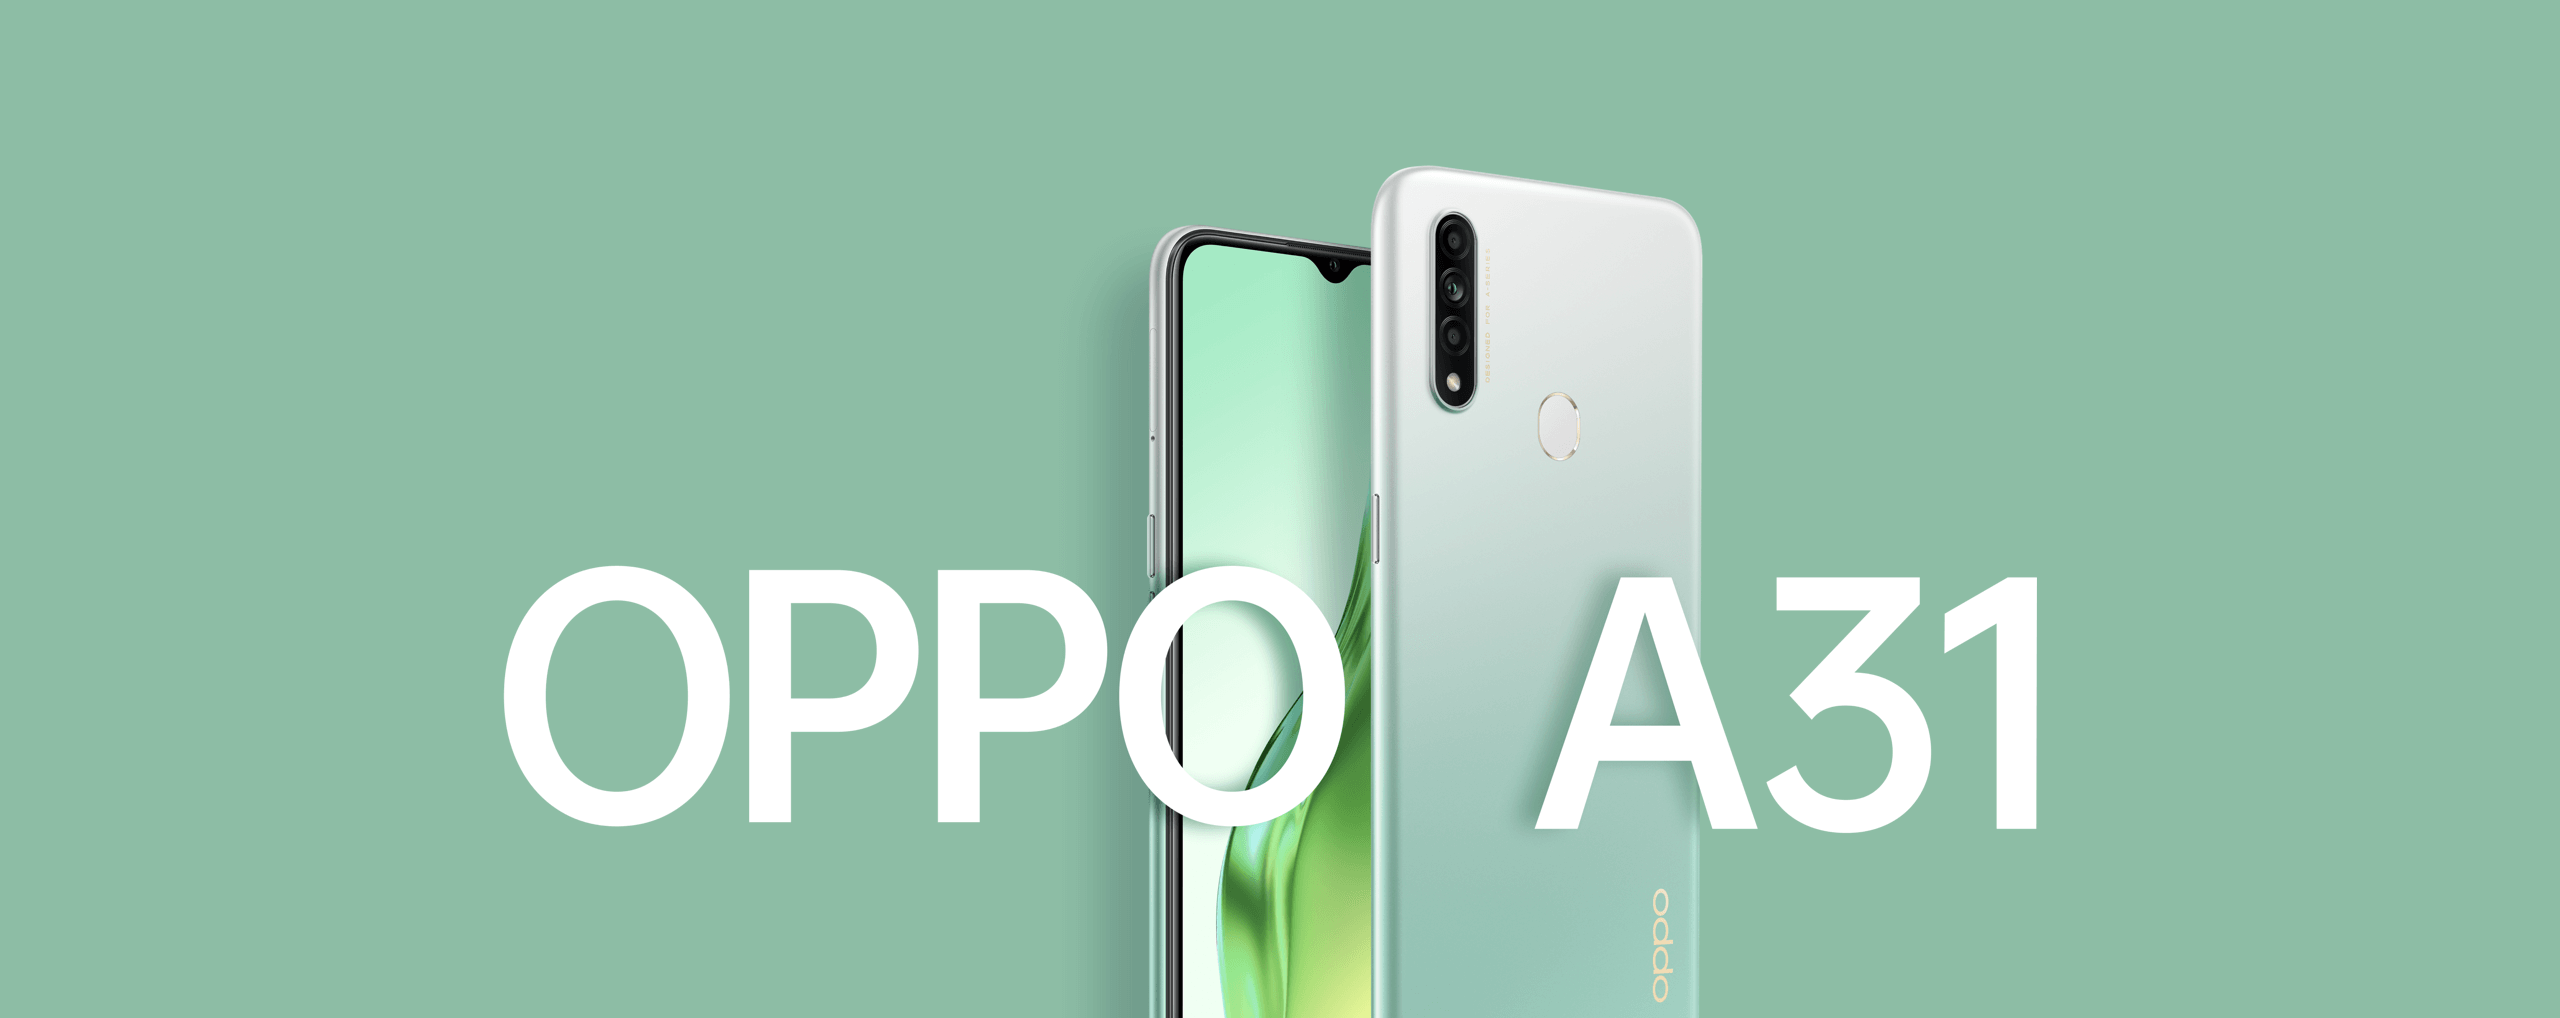 OPPO A31 price in nepal